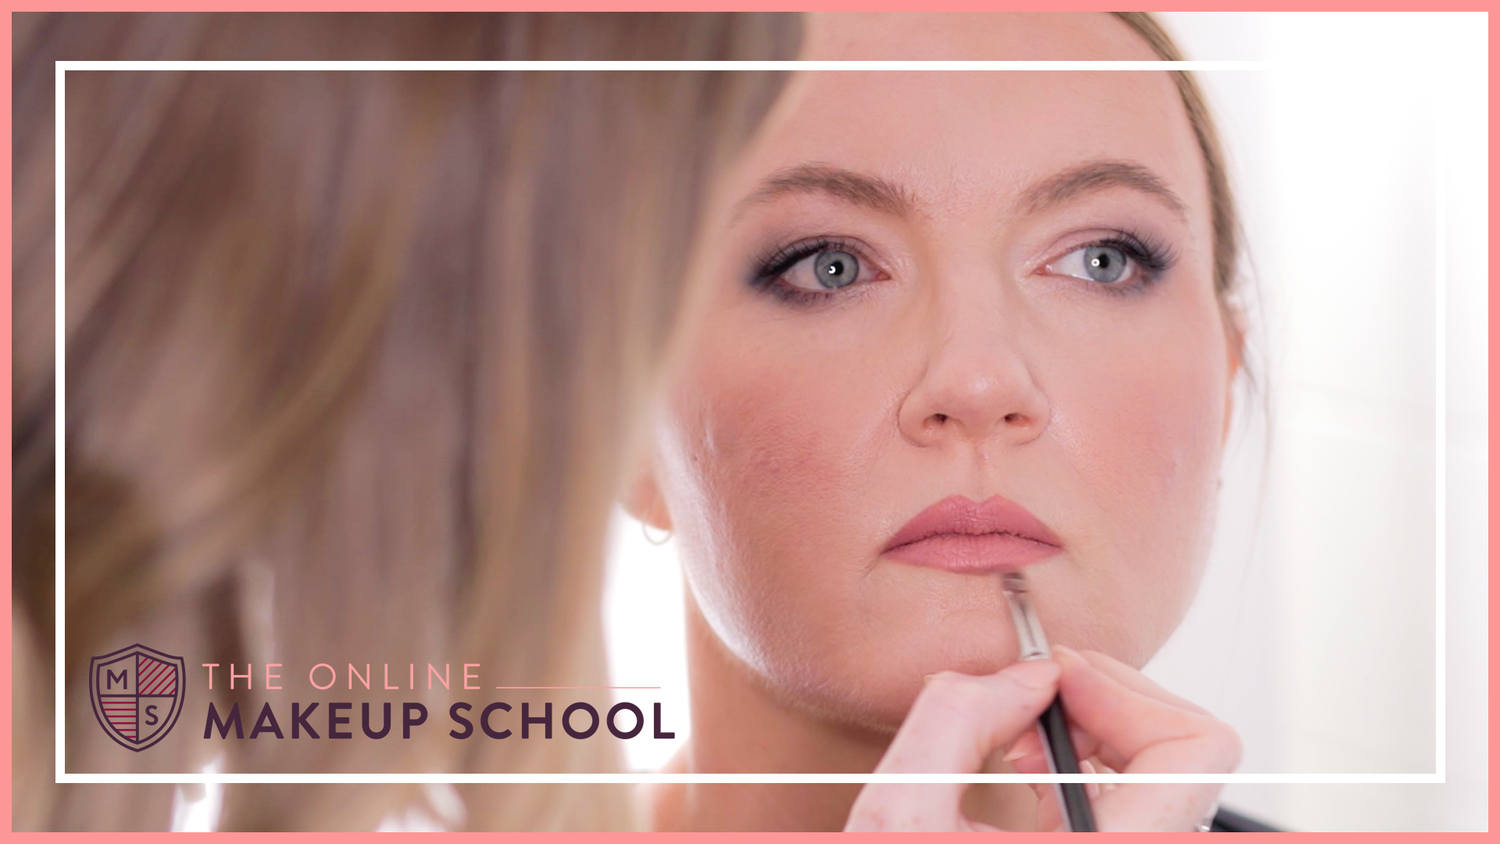 Learn How to Apply Makeup at Home | Online Makeup School Videos